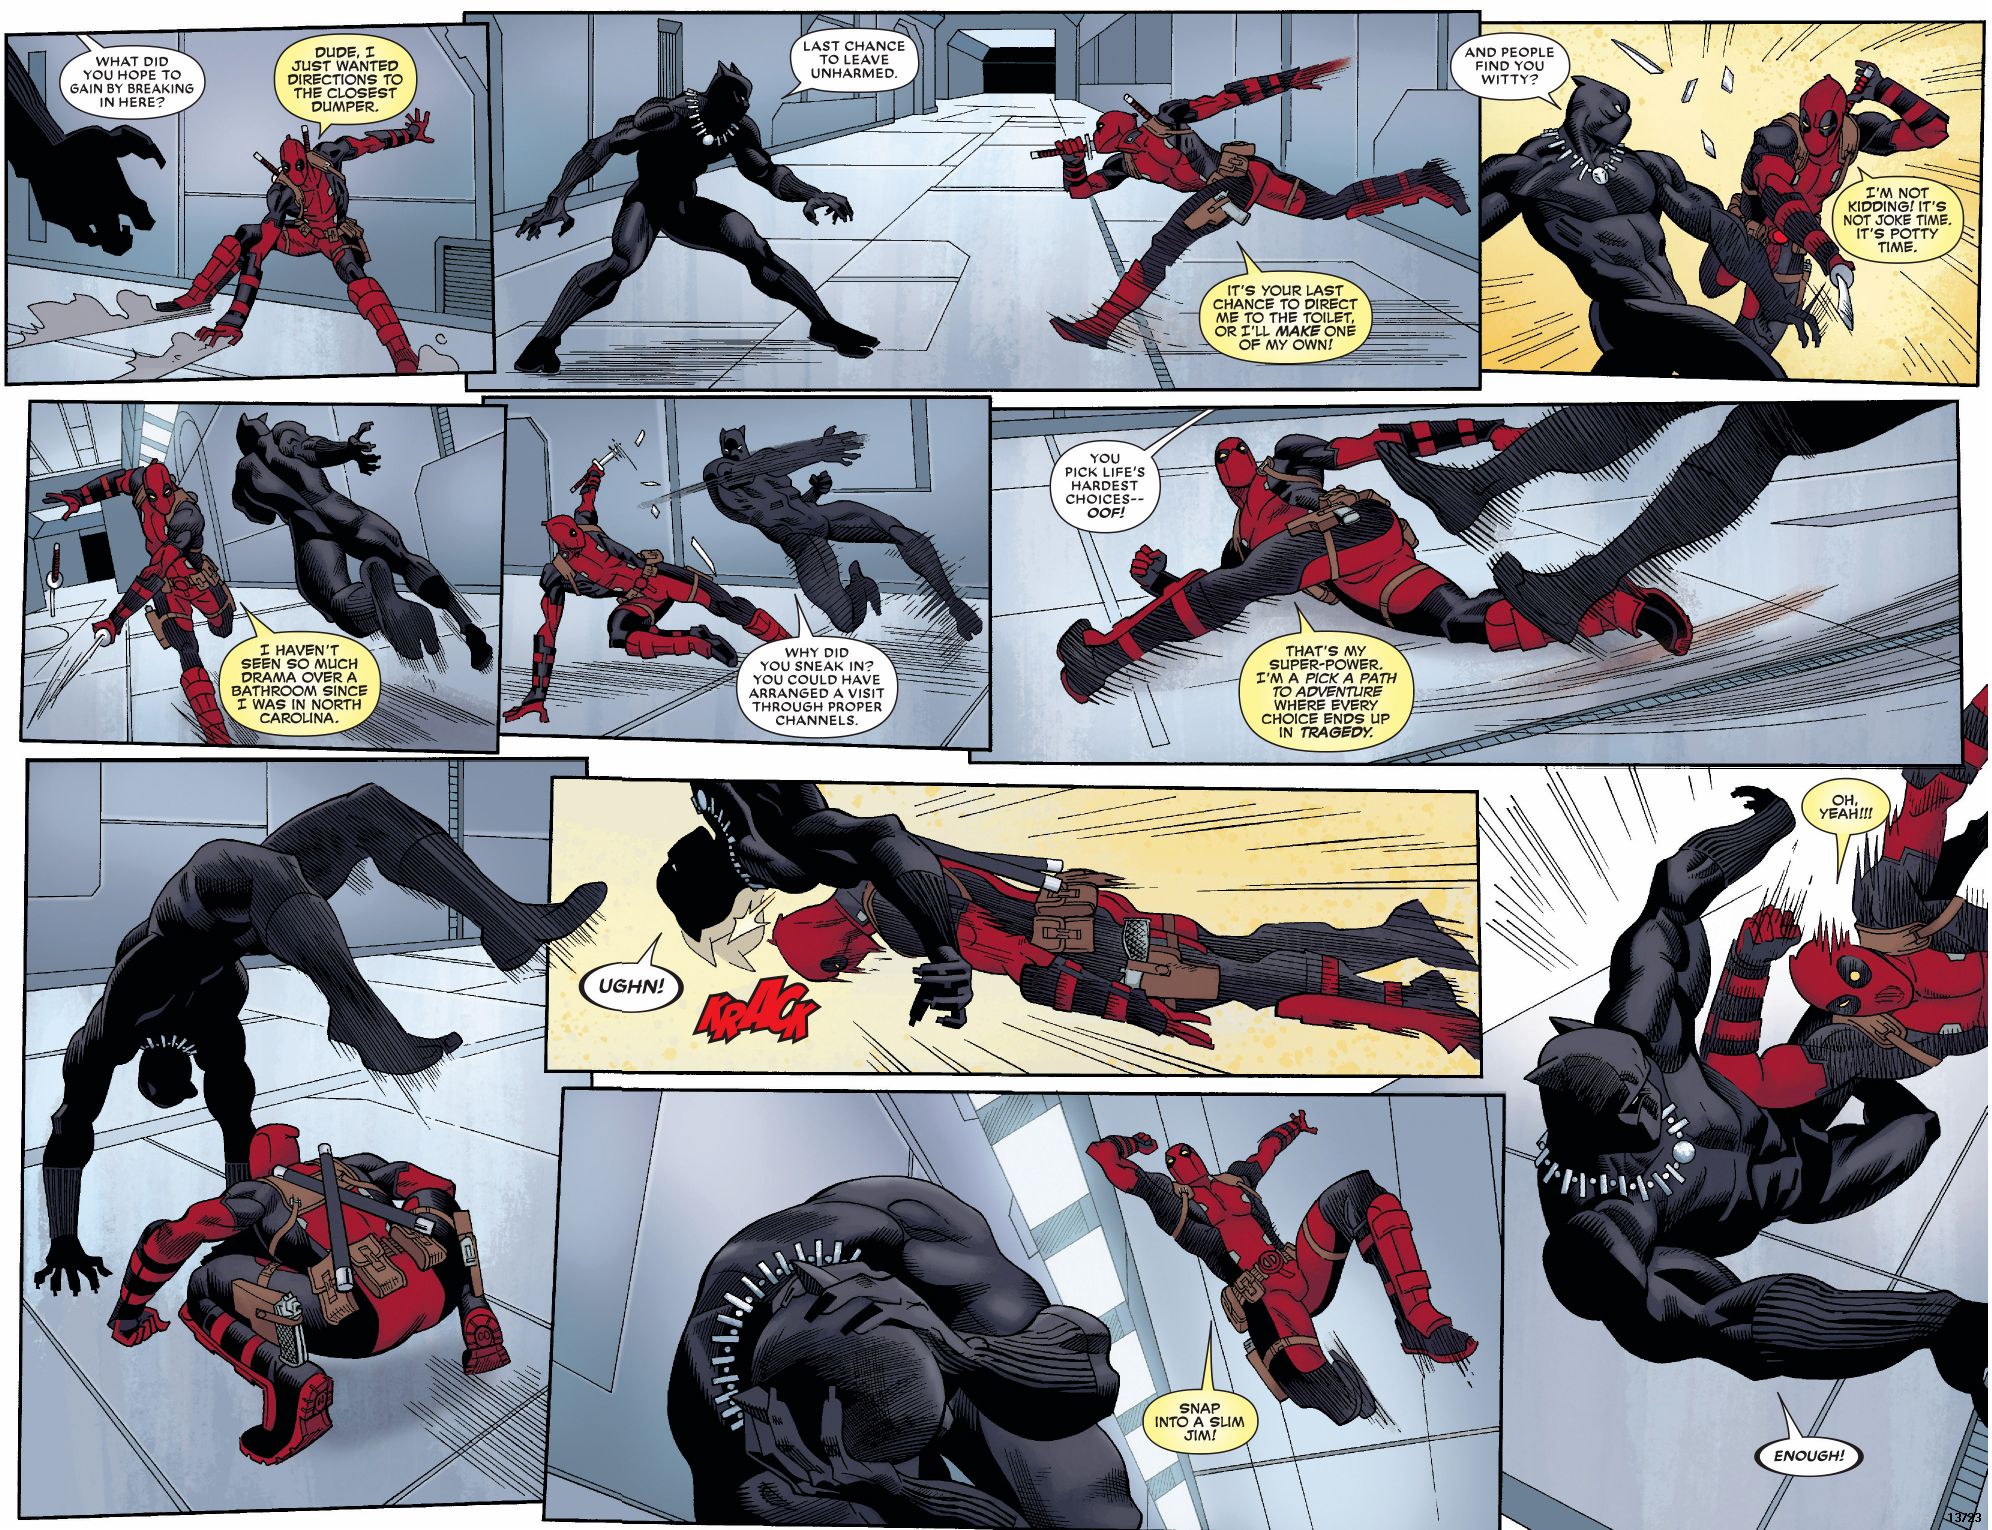 Black Panther vs Nightwing : whowouldwin - photo#28